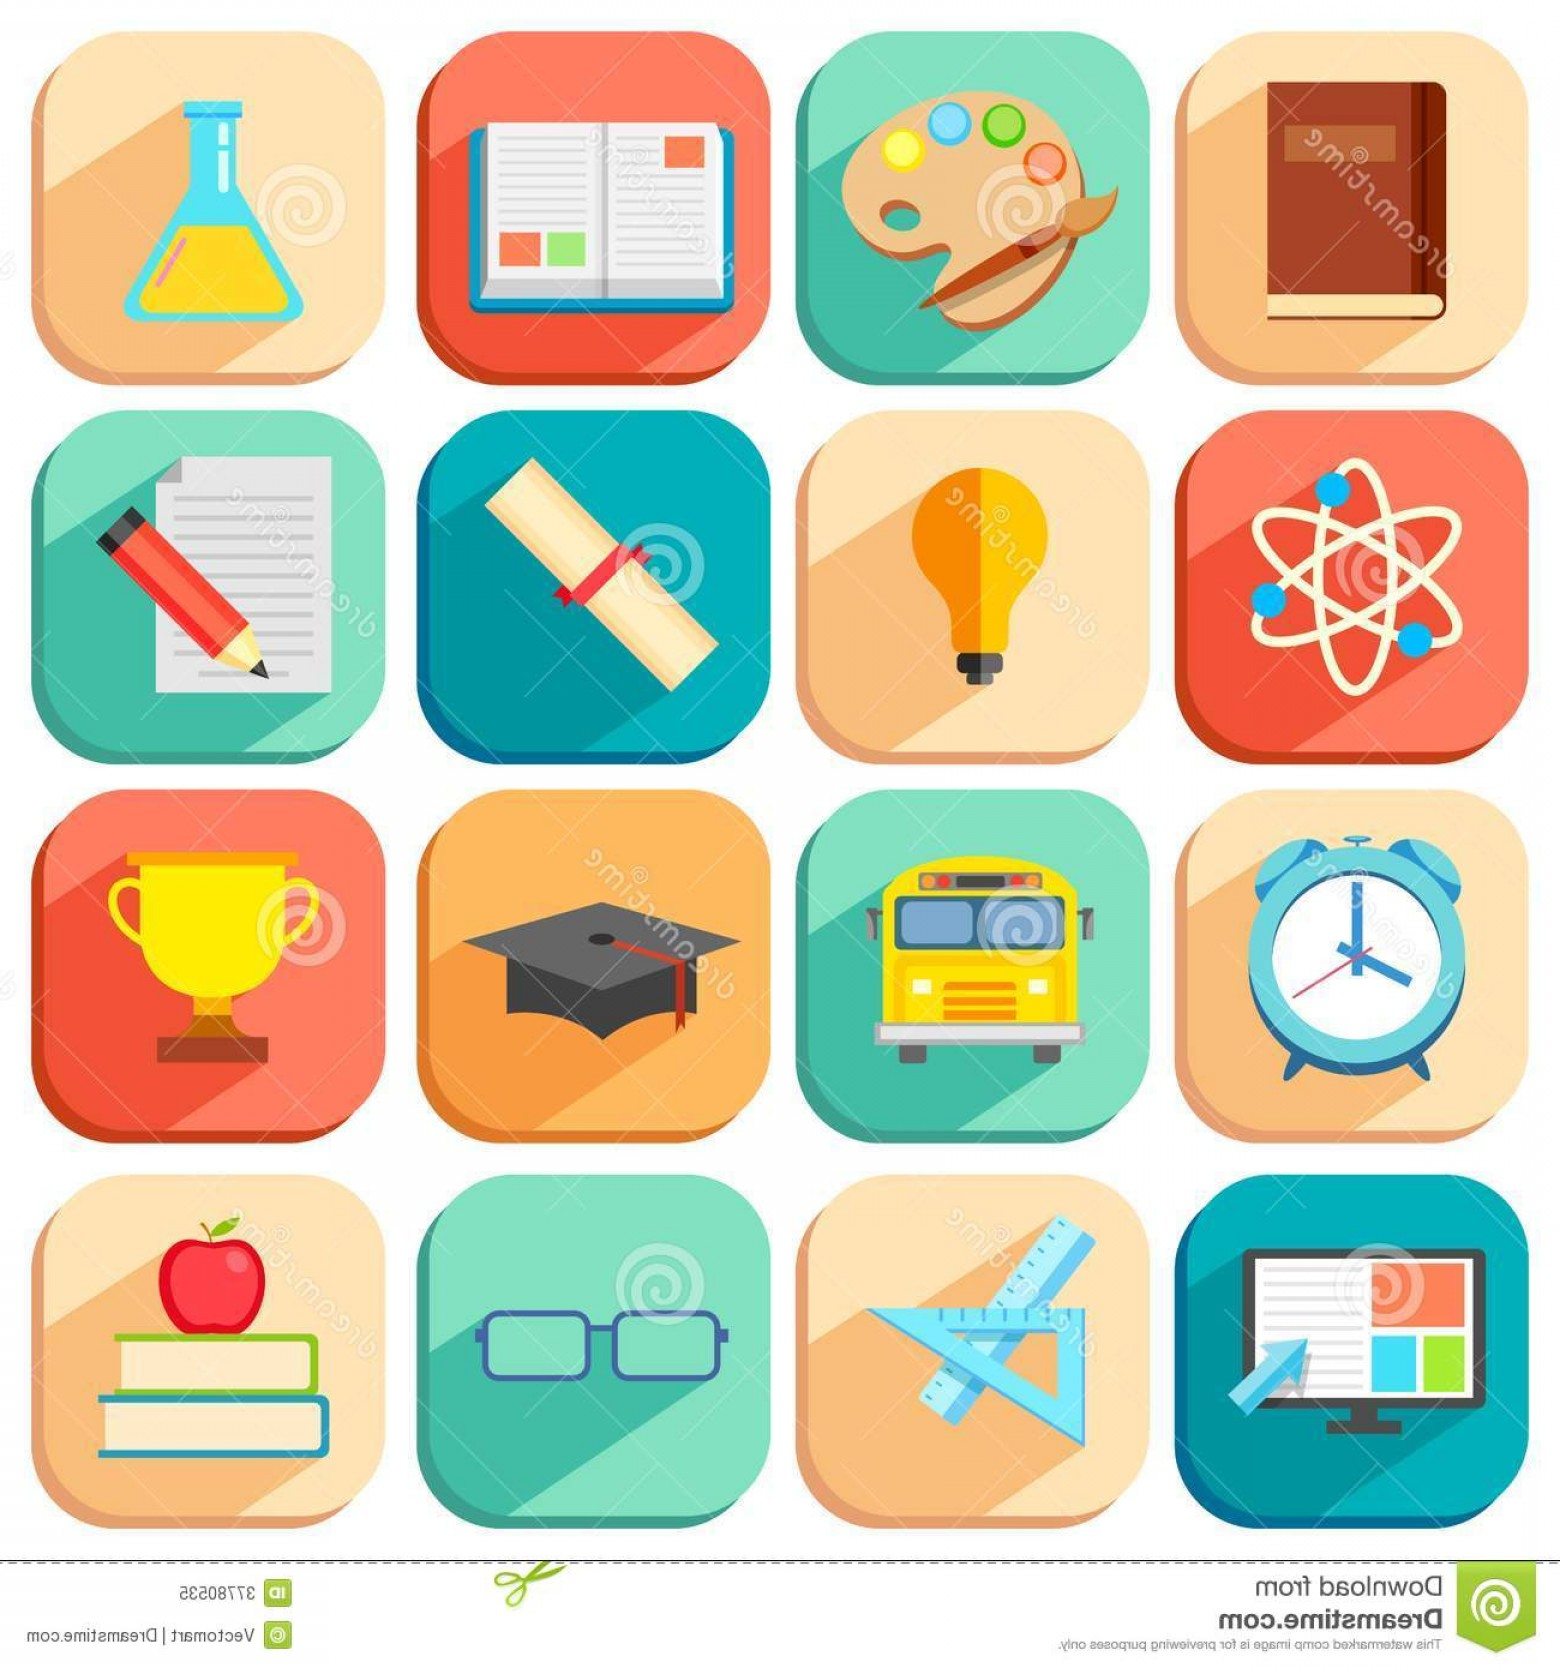 Free Vector Flat Education Icons: Royalty Free Stock Photo Flat Education Icon Illustration Set Image